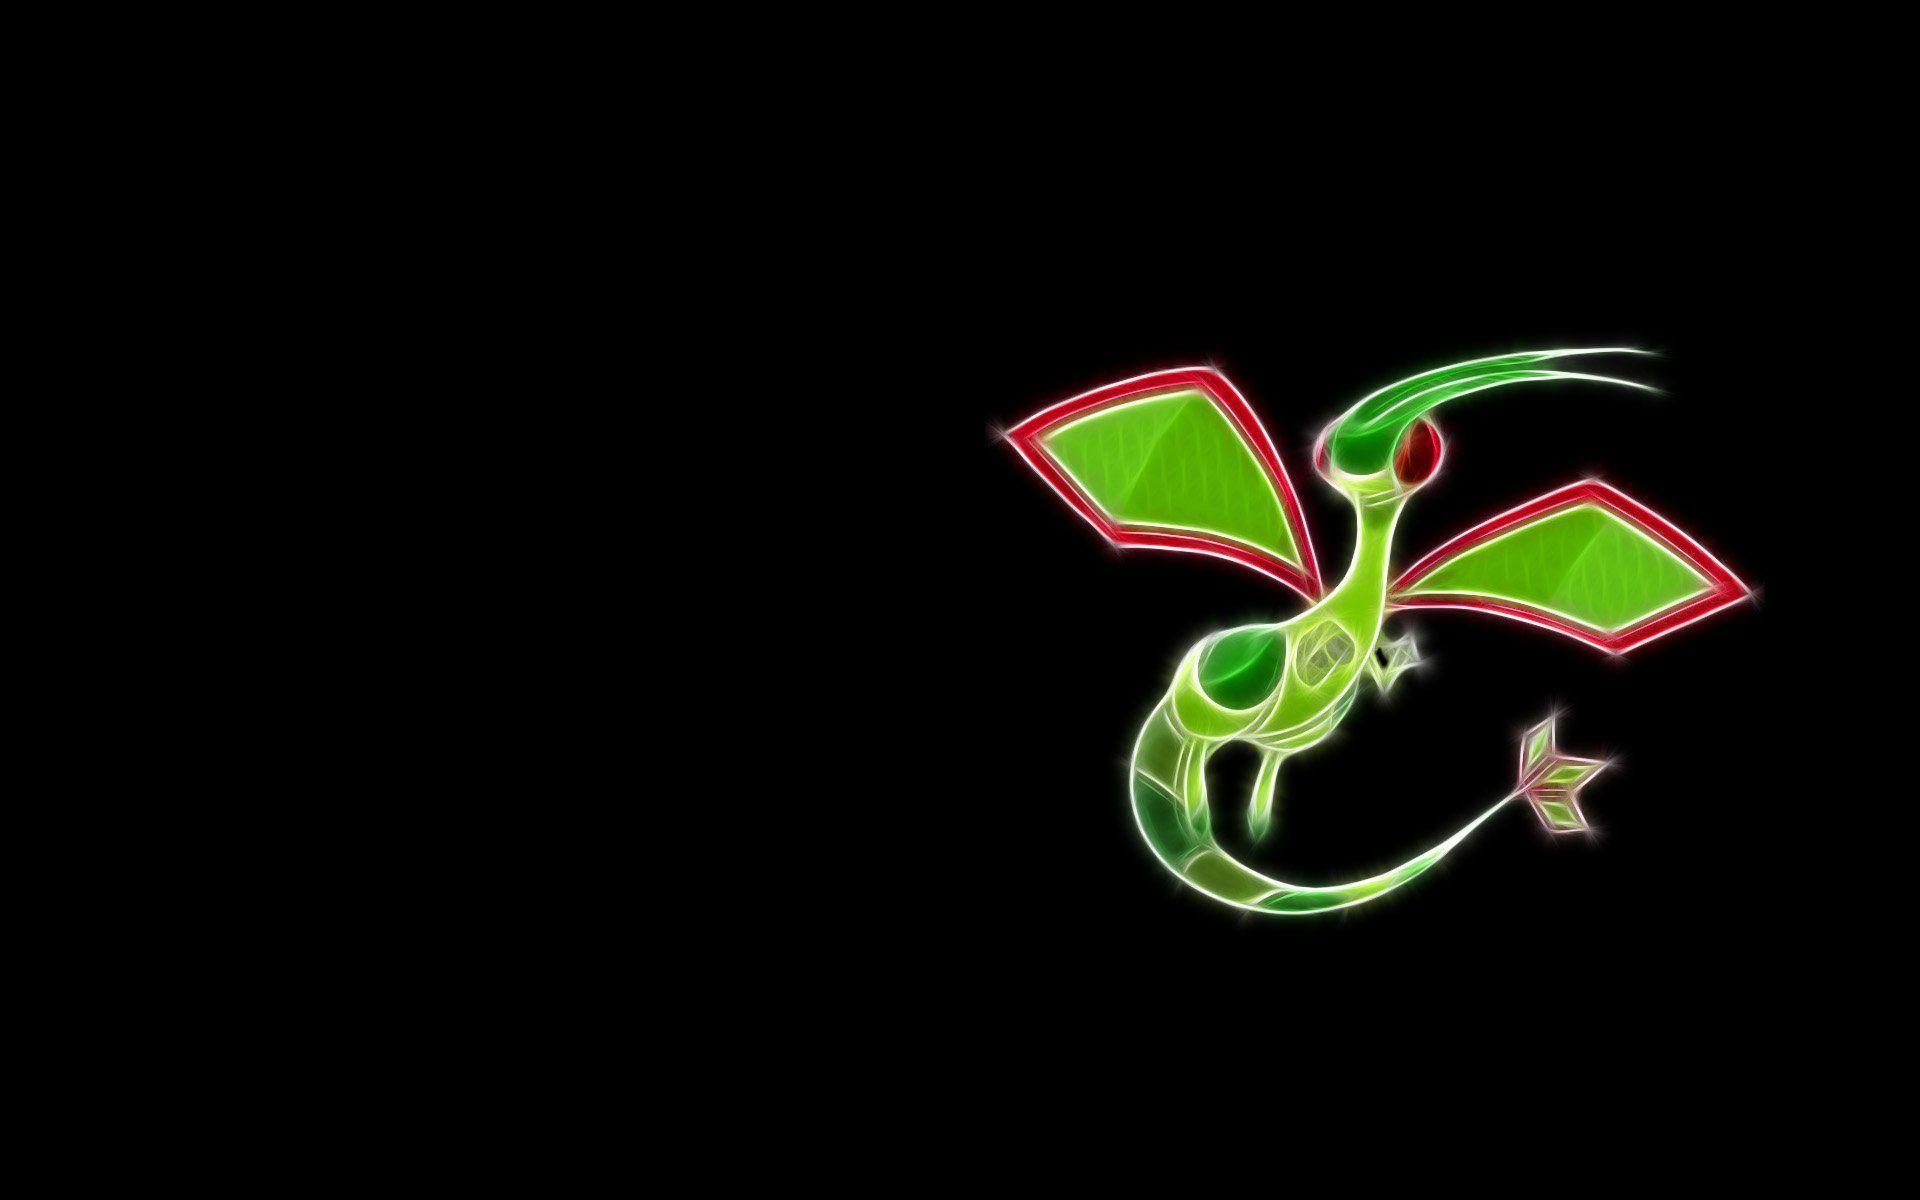 12 Flygon (Pokémon) HD Wallpapers | Backgrounds - Wallpaper Abyss